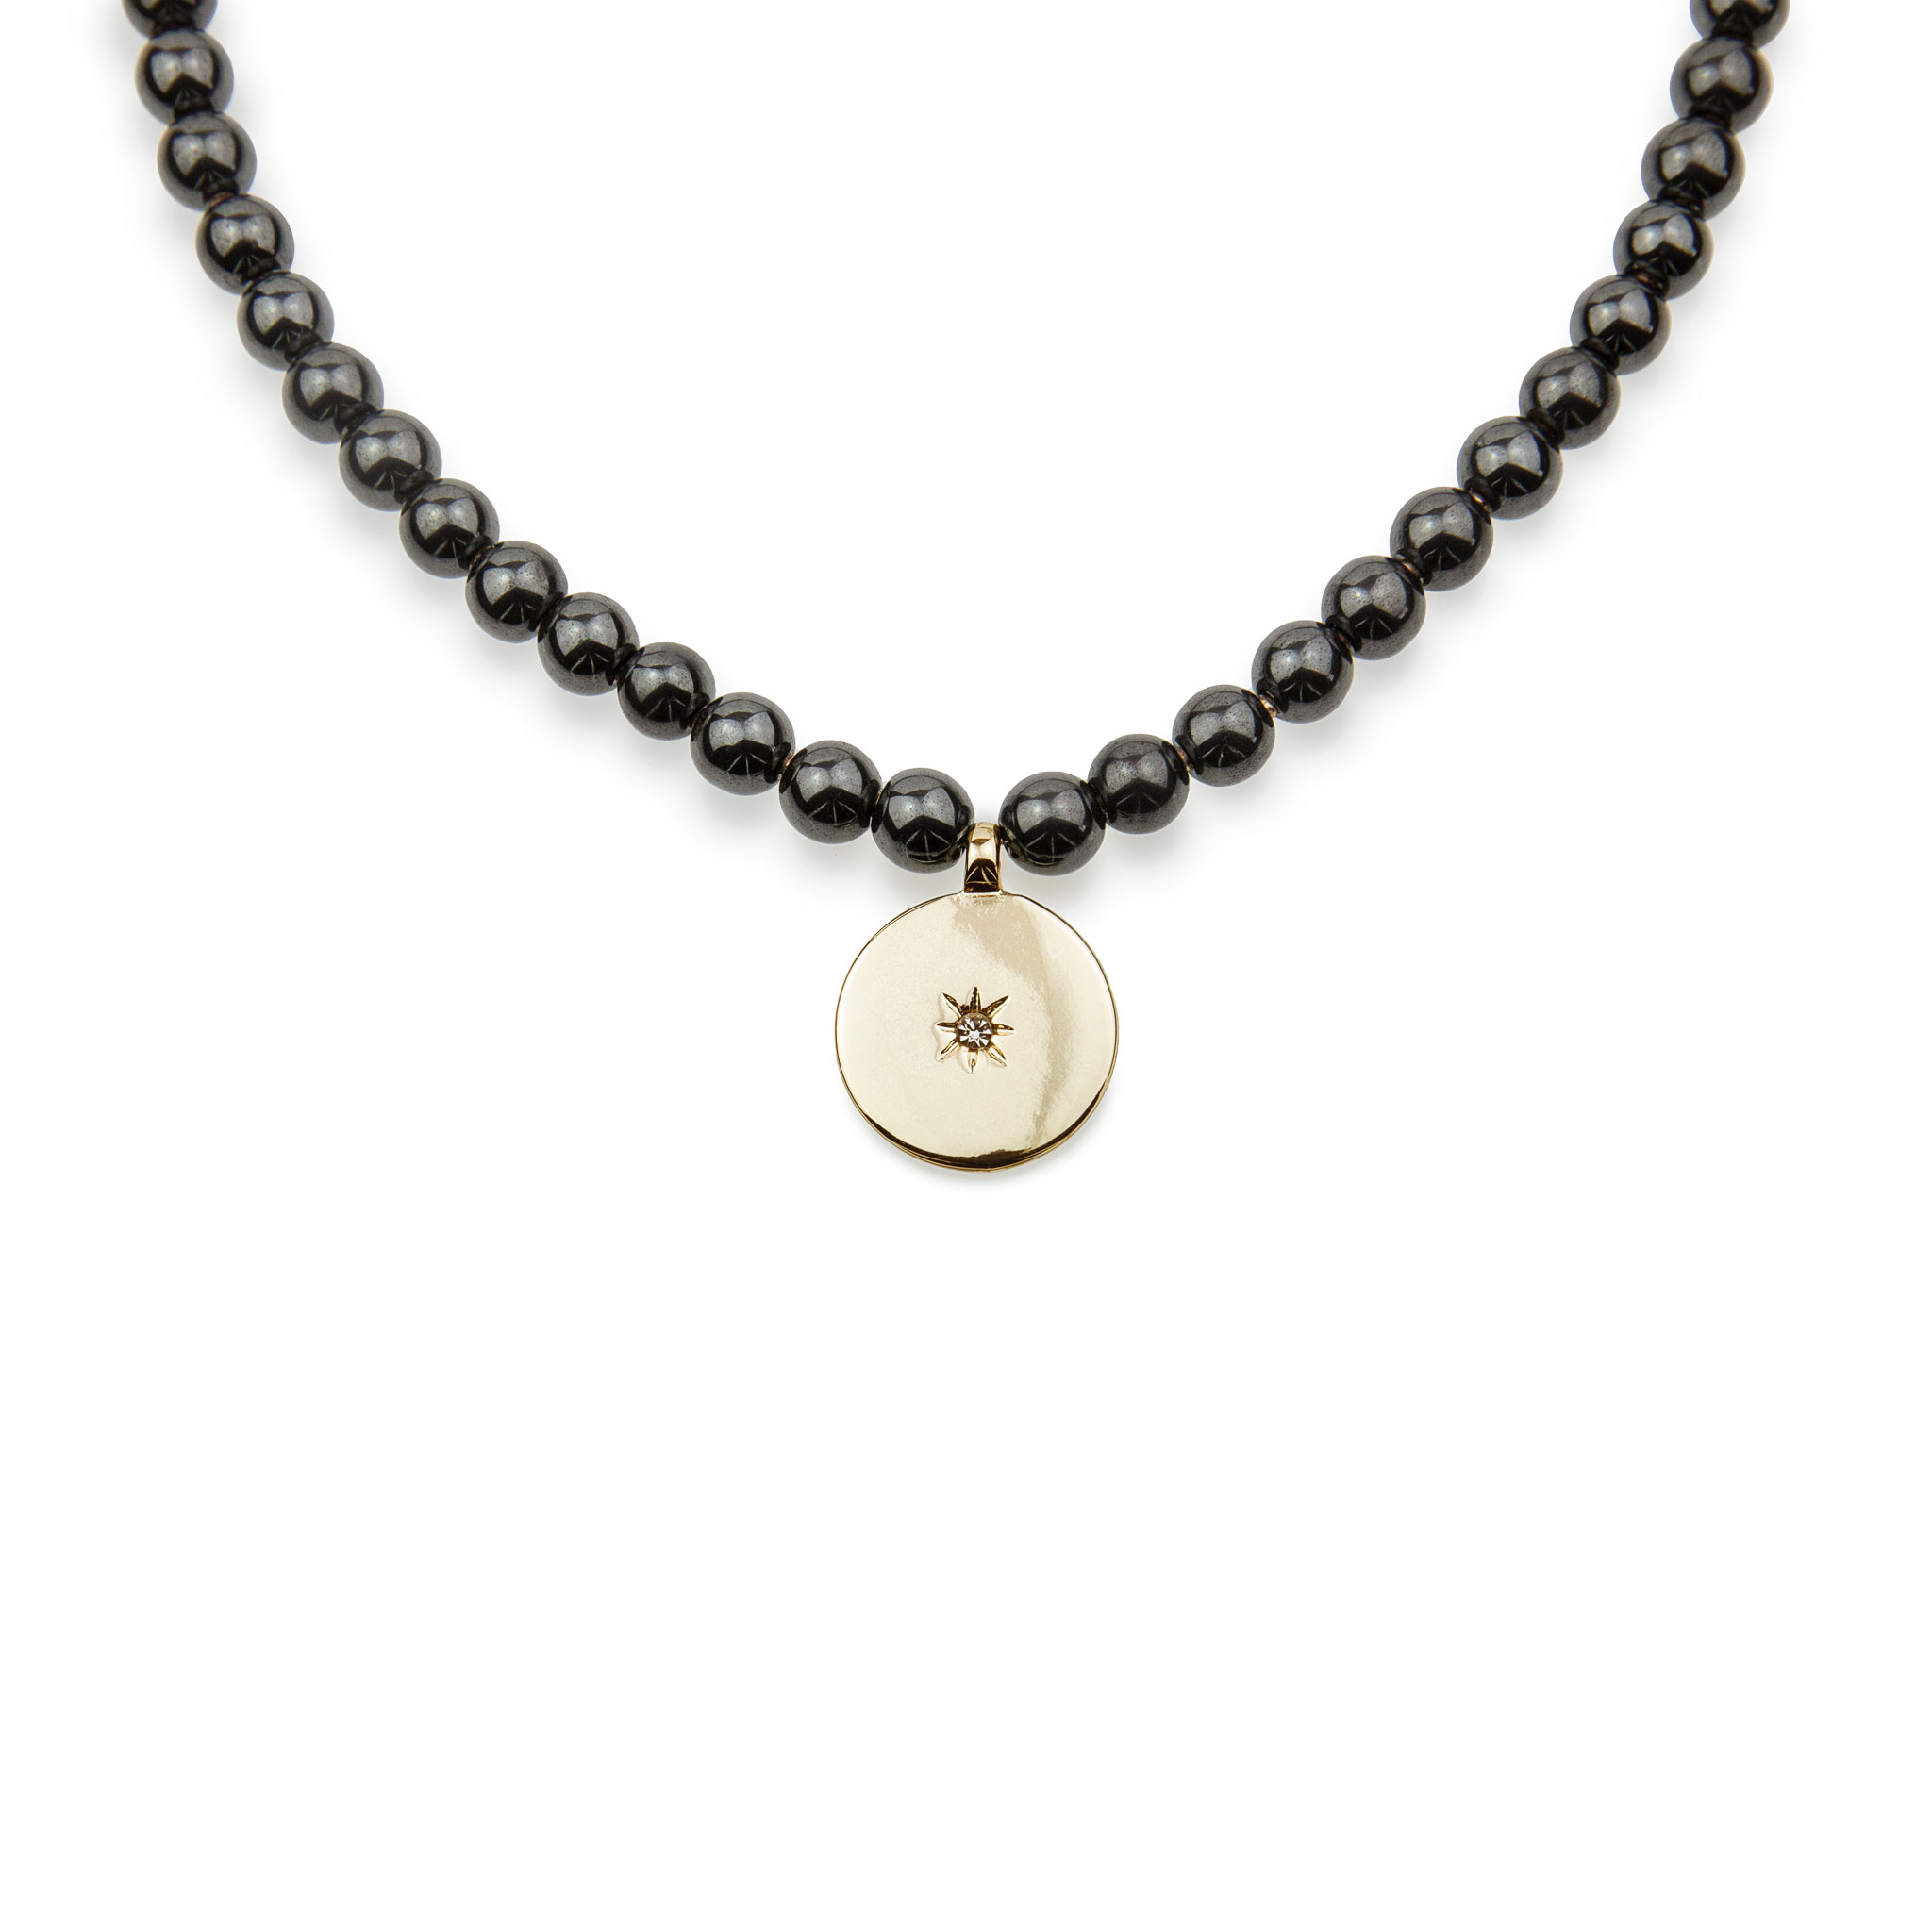 Hematite Stone Necklace Decorated With A Circle Pendant